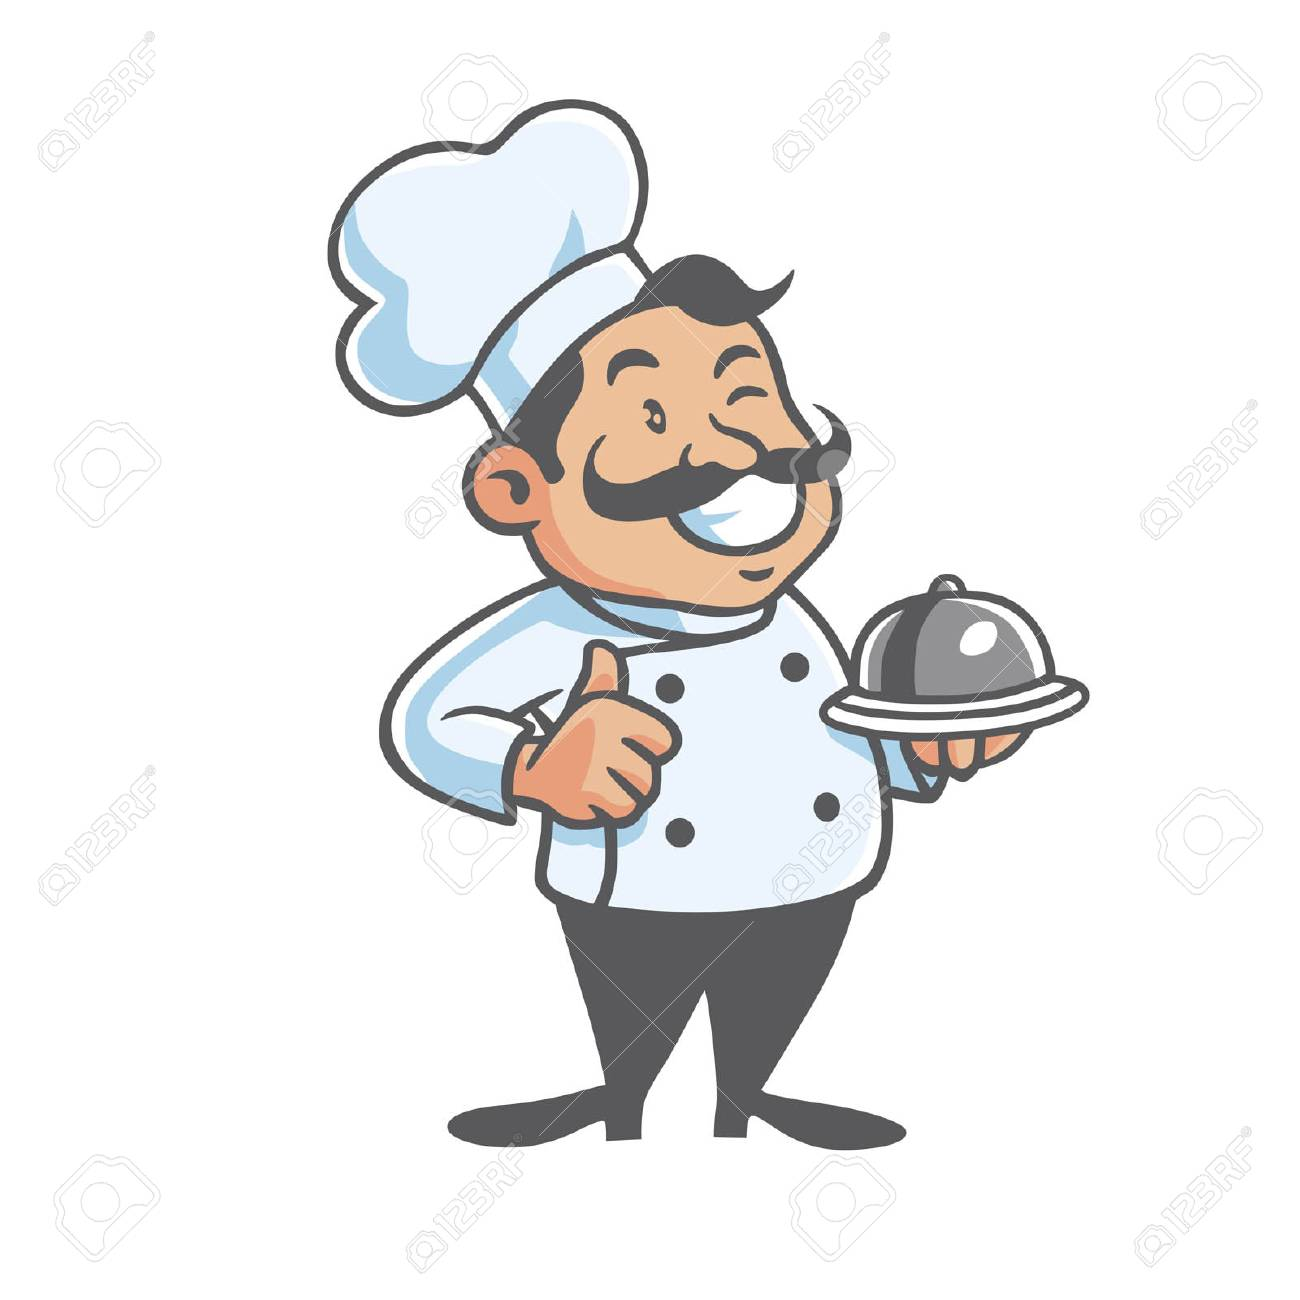 hight resolution of happy chef mascot clipart stock vector 58752045